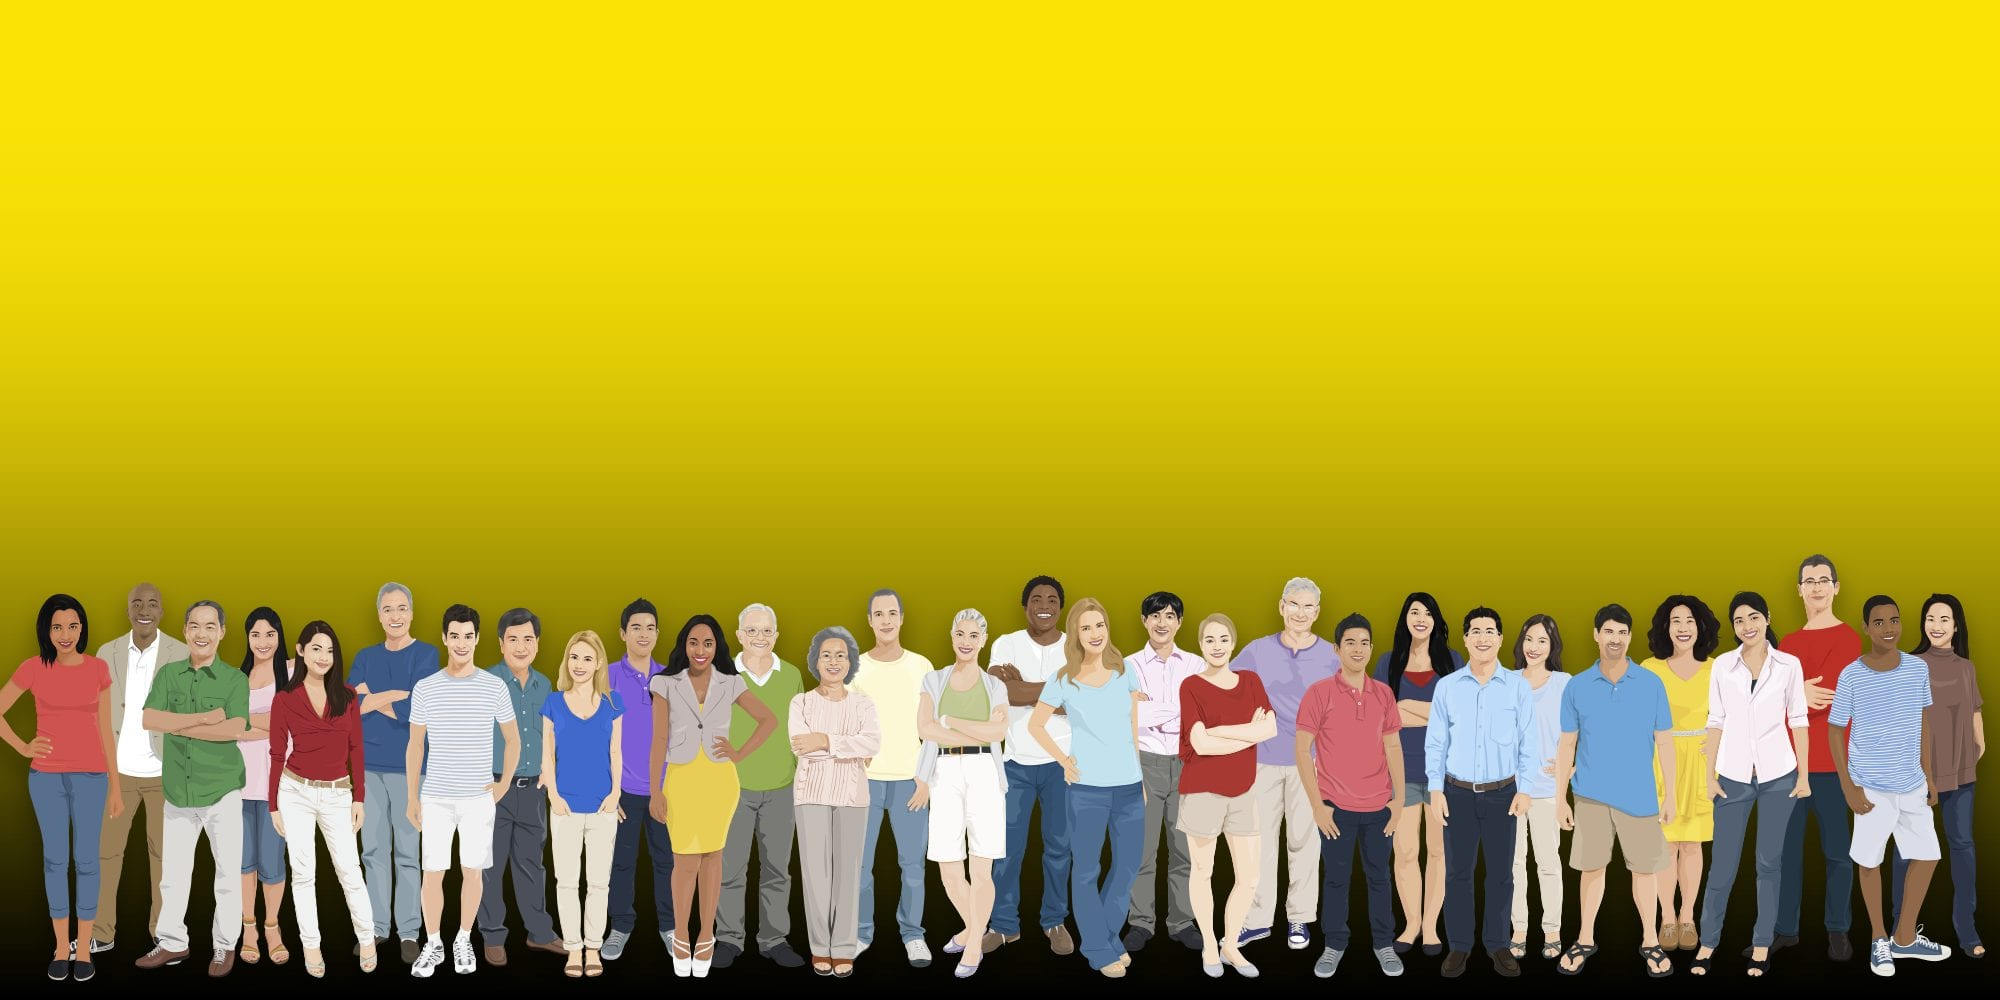 2020 Census: Get Counted, Dutchtown!